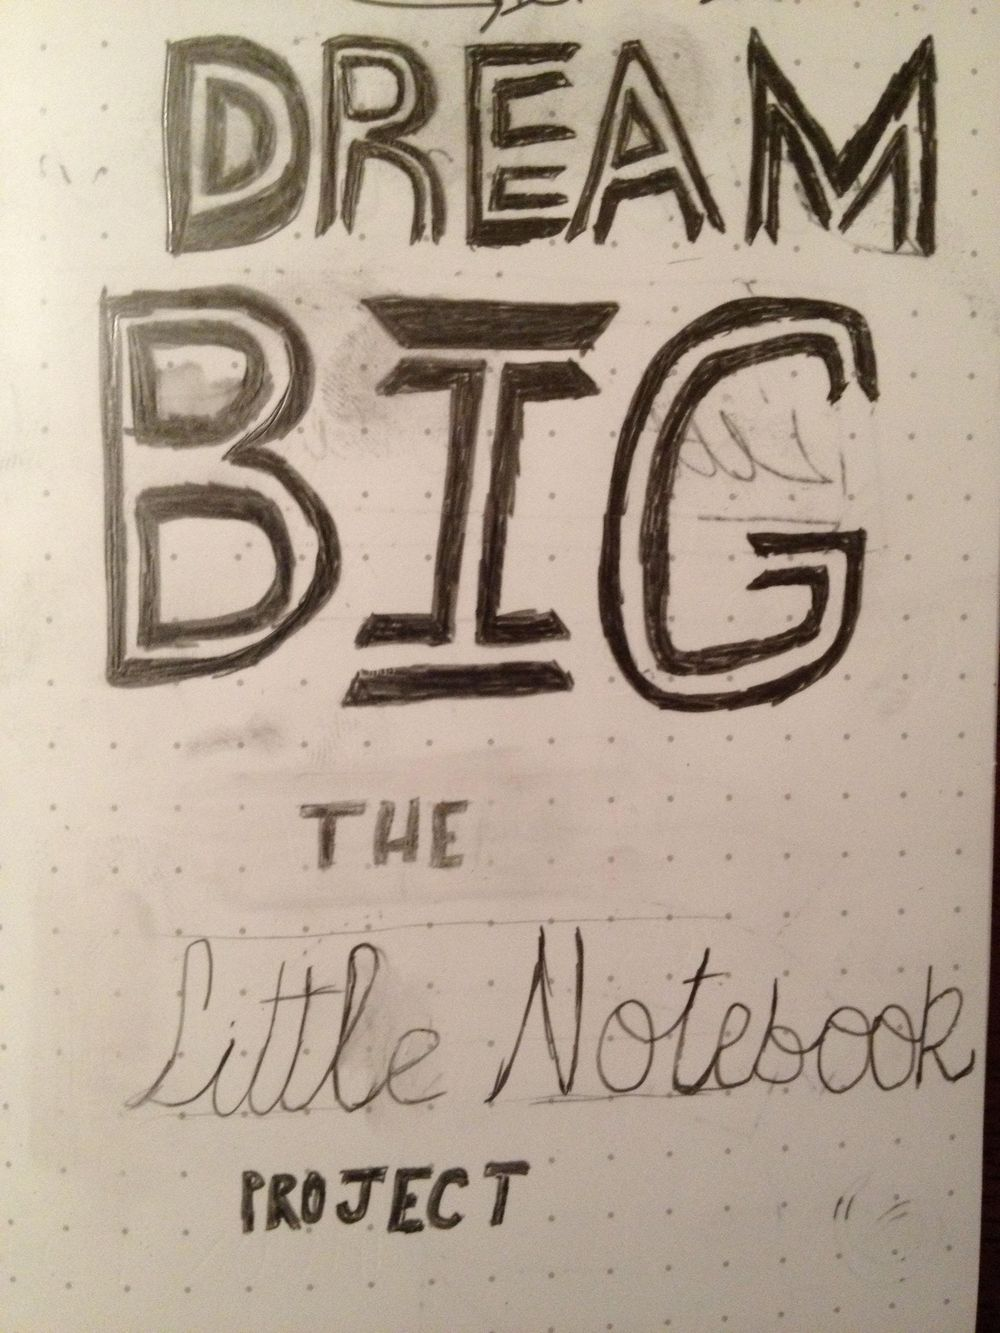 Little Notebook of Dreams - image 2 - student project